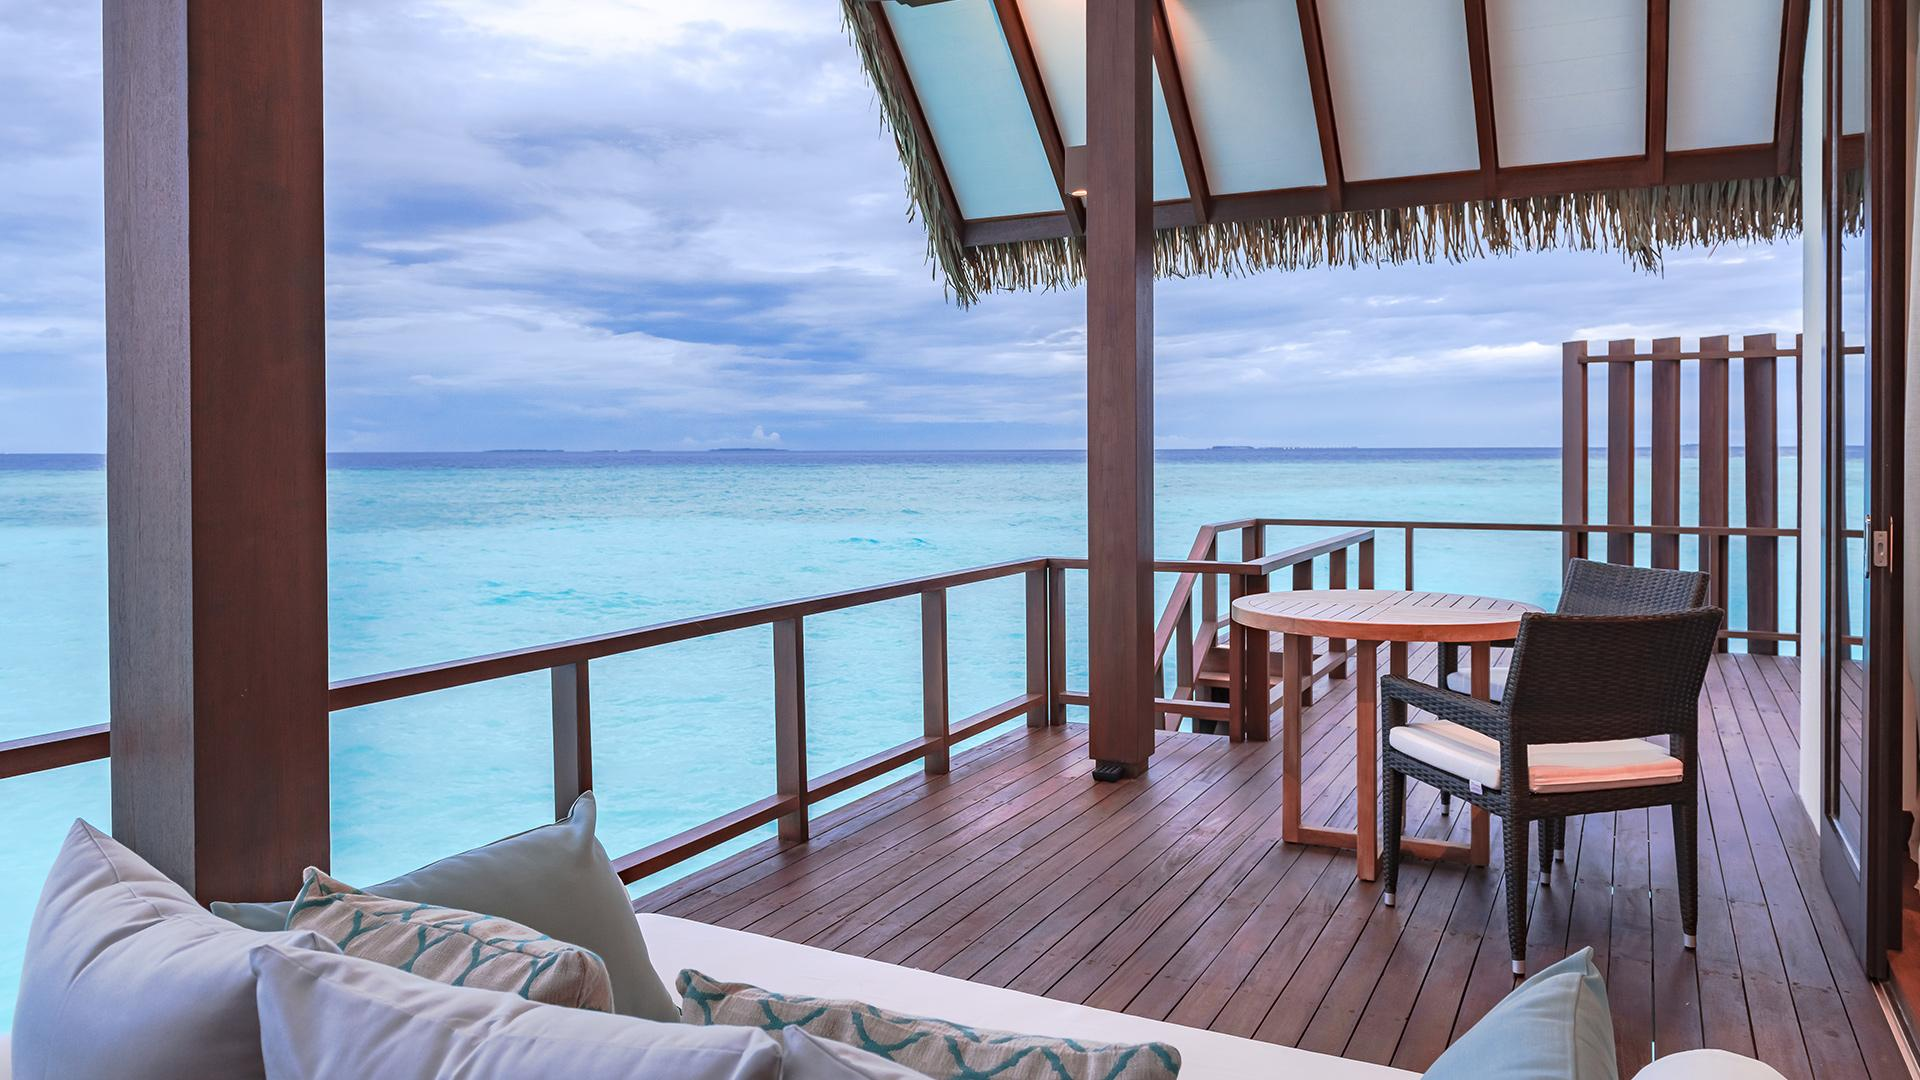 Ocean Villa Sunset image 1 at Heritance Aarah by null, North Province, Maldives